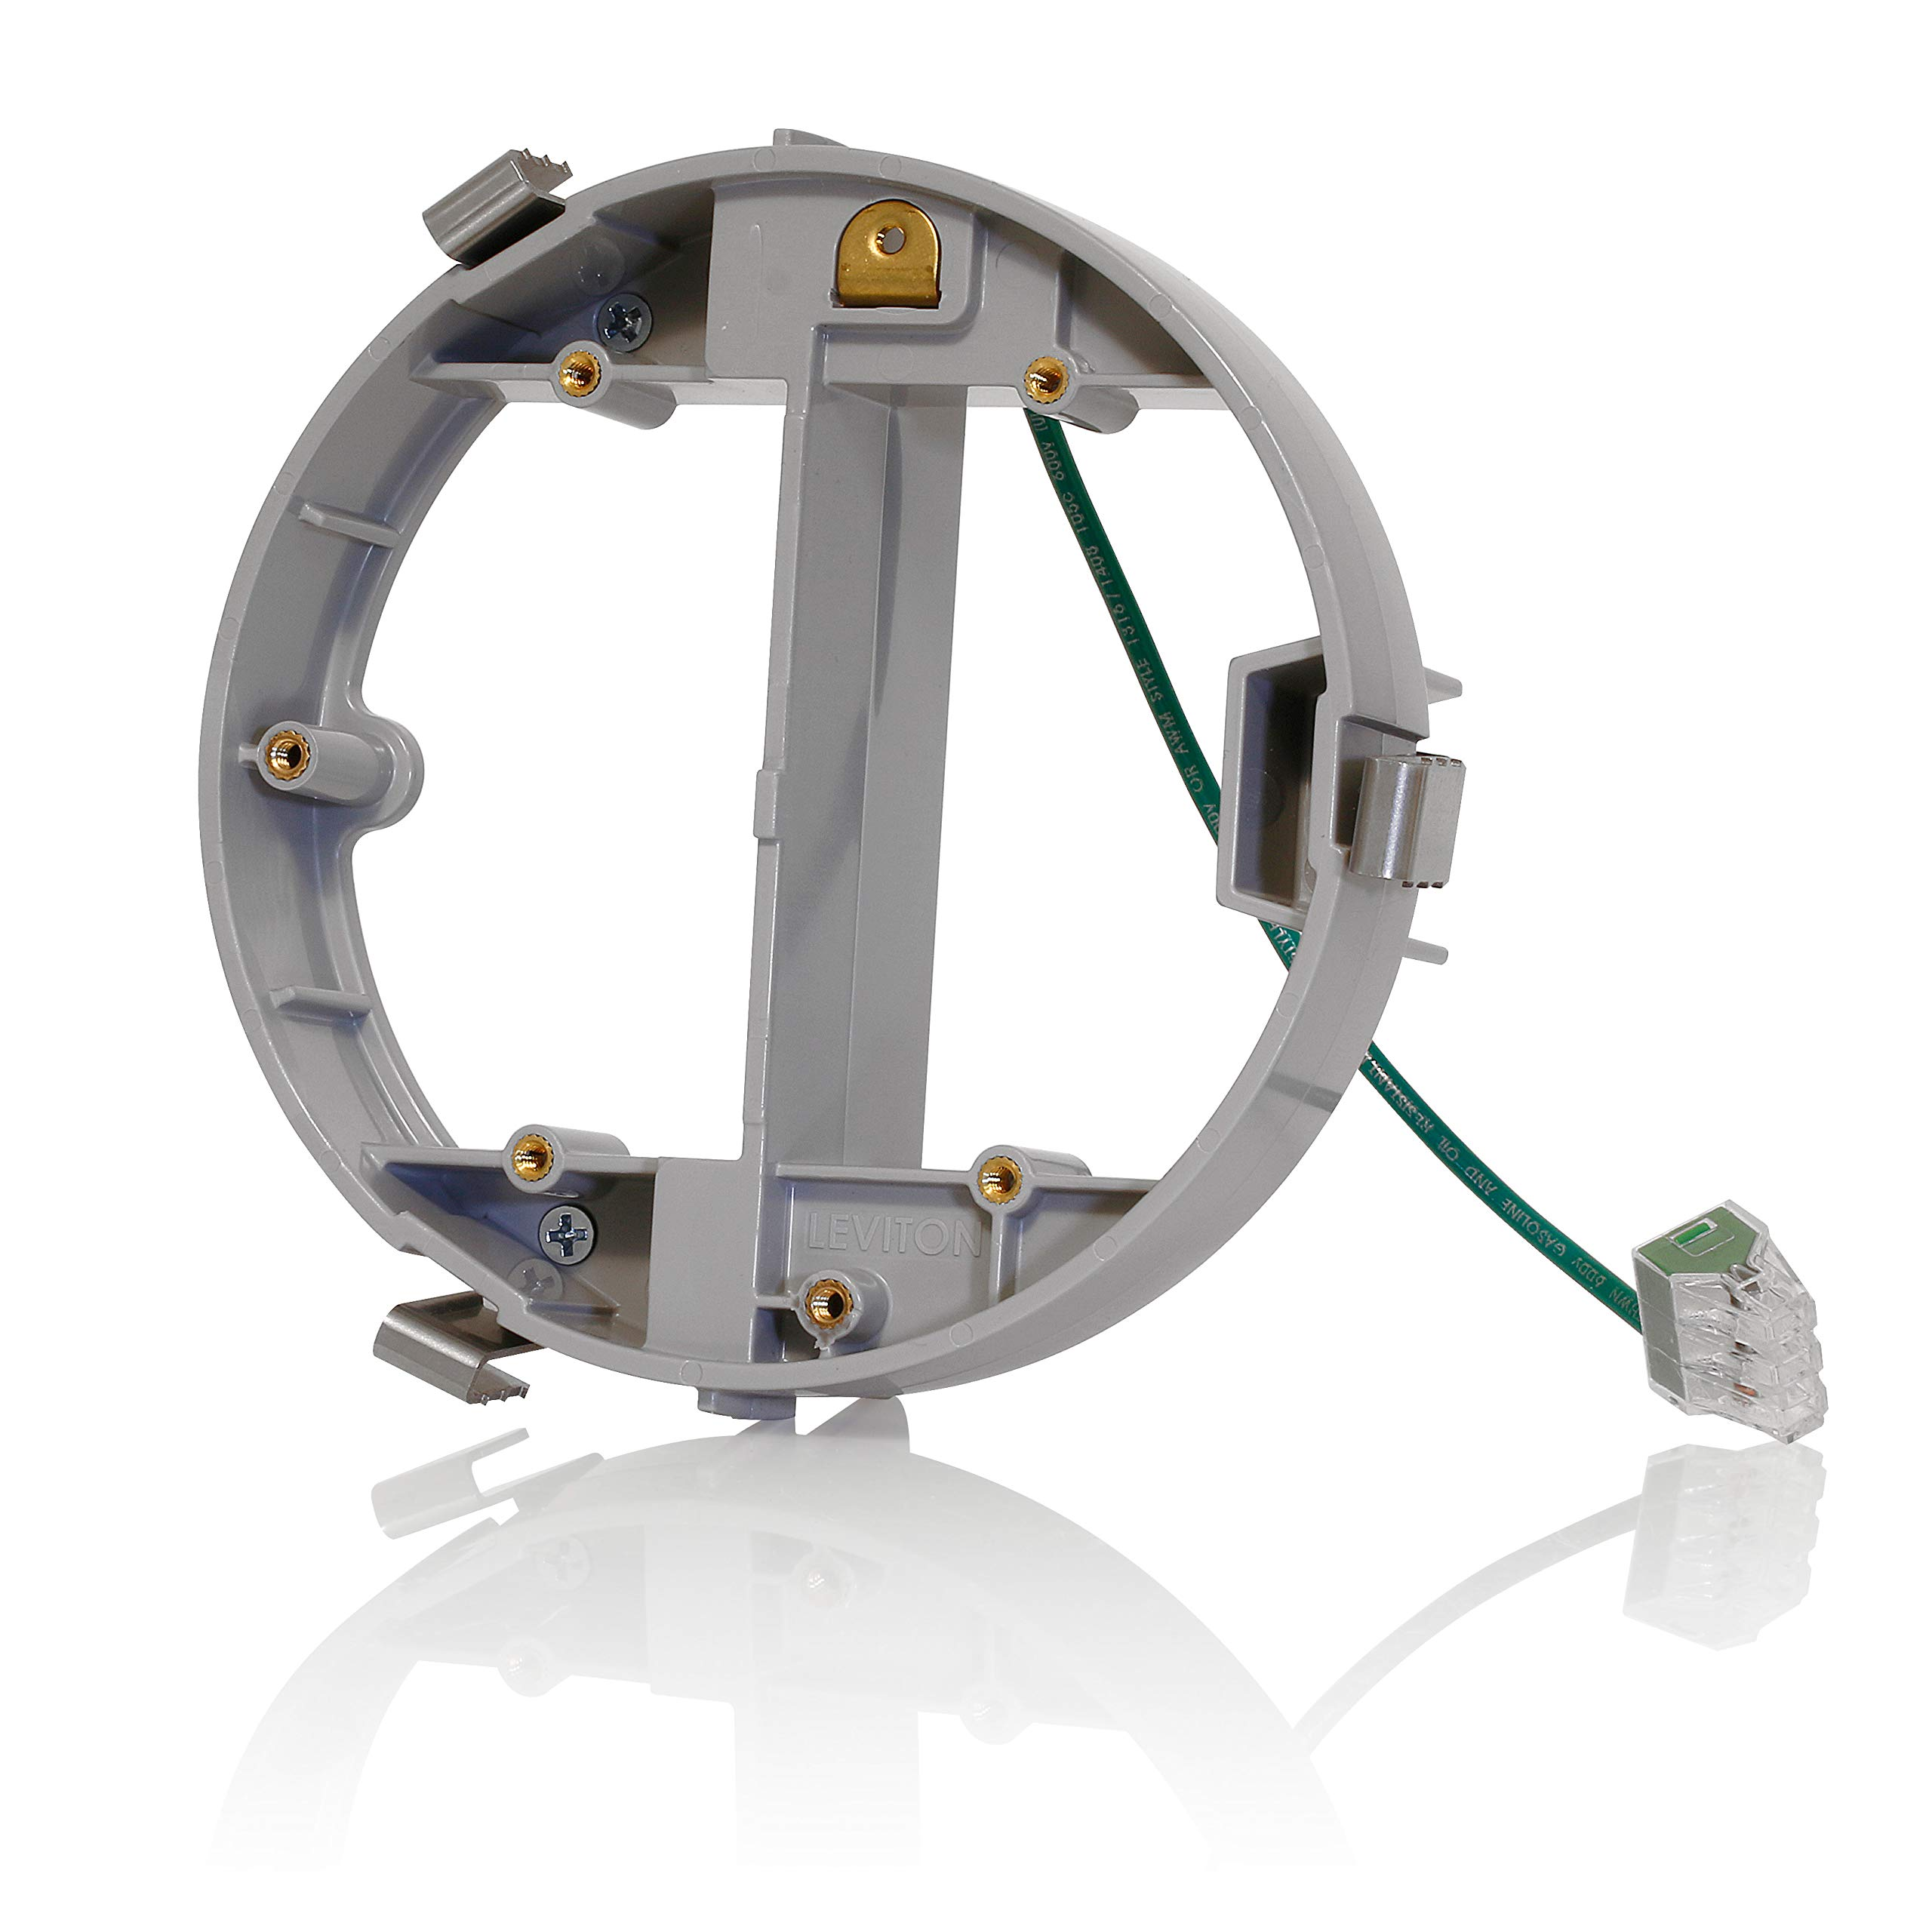 Leviton FBLEV-GY Concrete Floor Box Leveling Ring